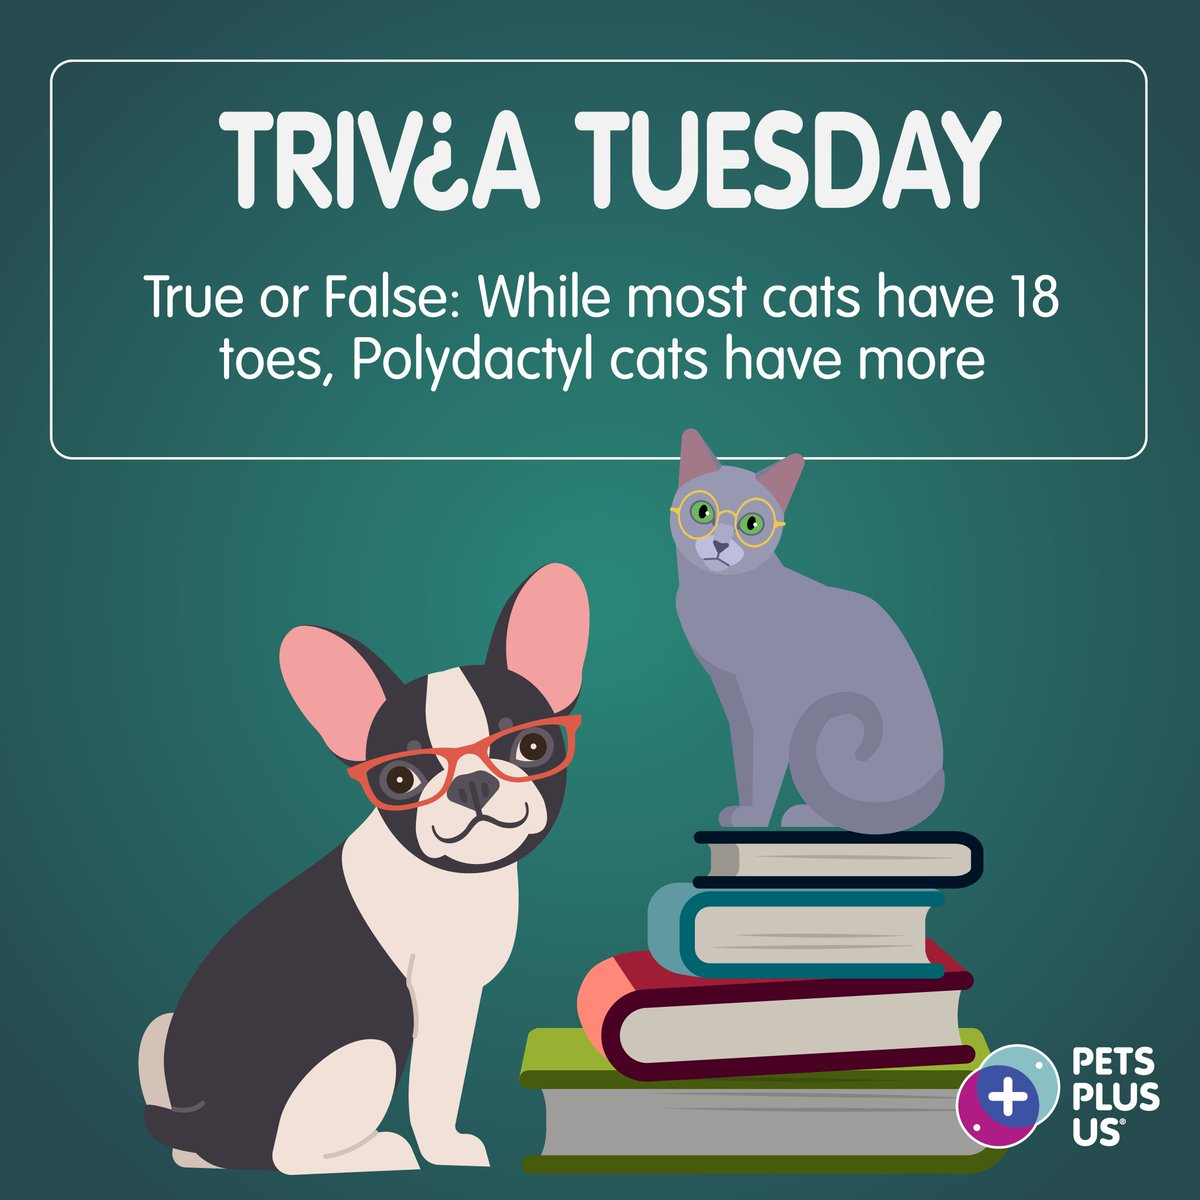 #Win a $25 PetSmart GC! Answer the question & RT to enter our #TriviaTuesday Giveaway. Open to CND residents only. Contest ends at 11:59PM EST. Note, this contest is in no way sponsored, endorsed or administered by, or associated with, Facebook, Instagram and/or Twitter. https://t.co/9gPftFpqJG